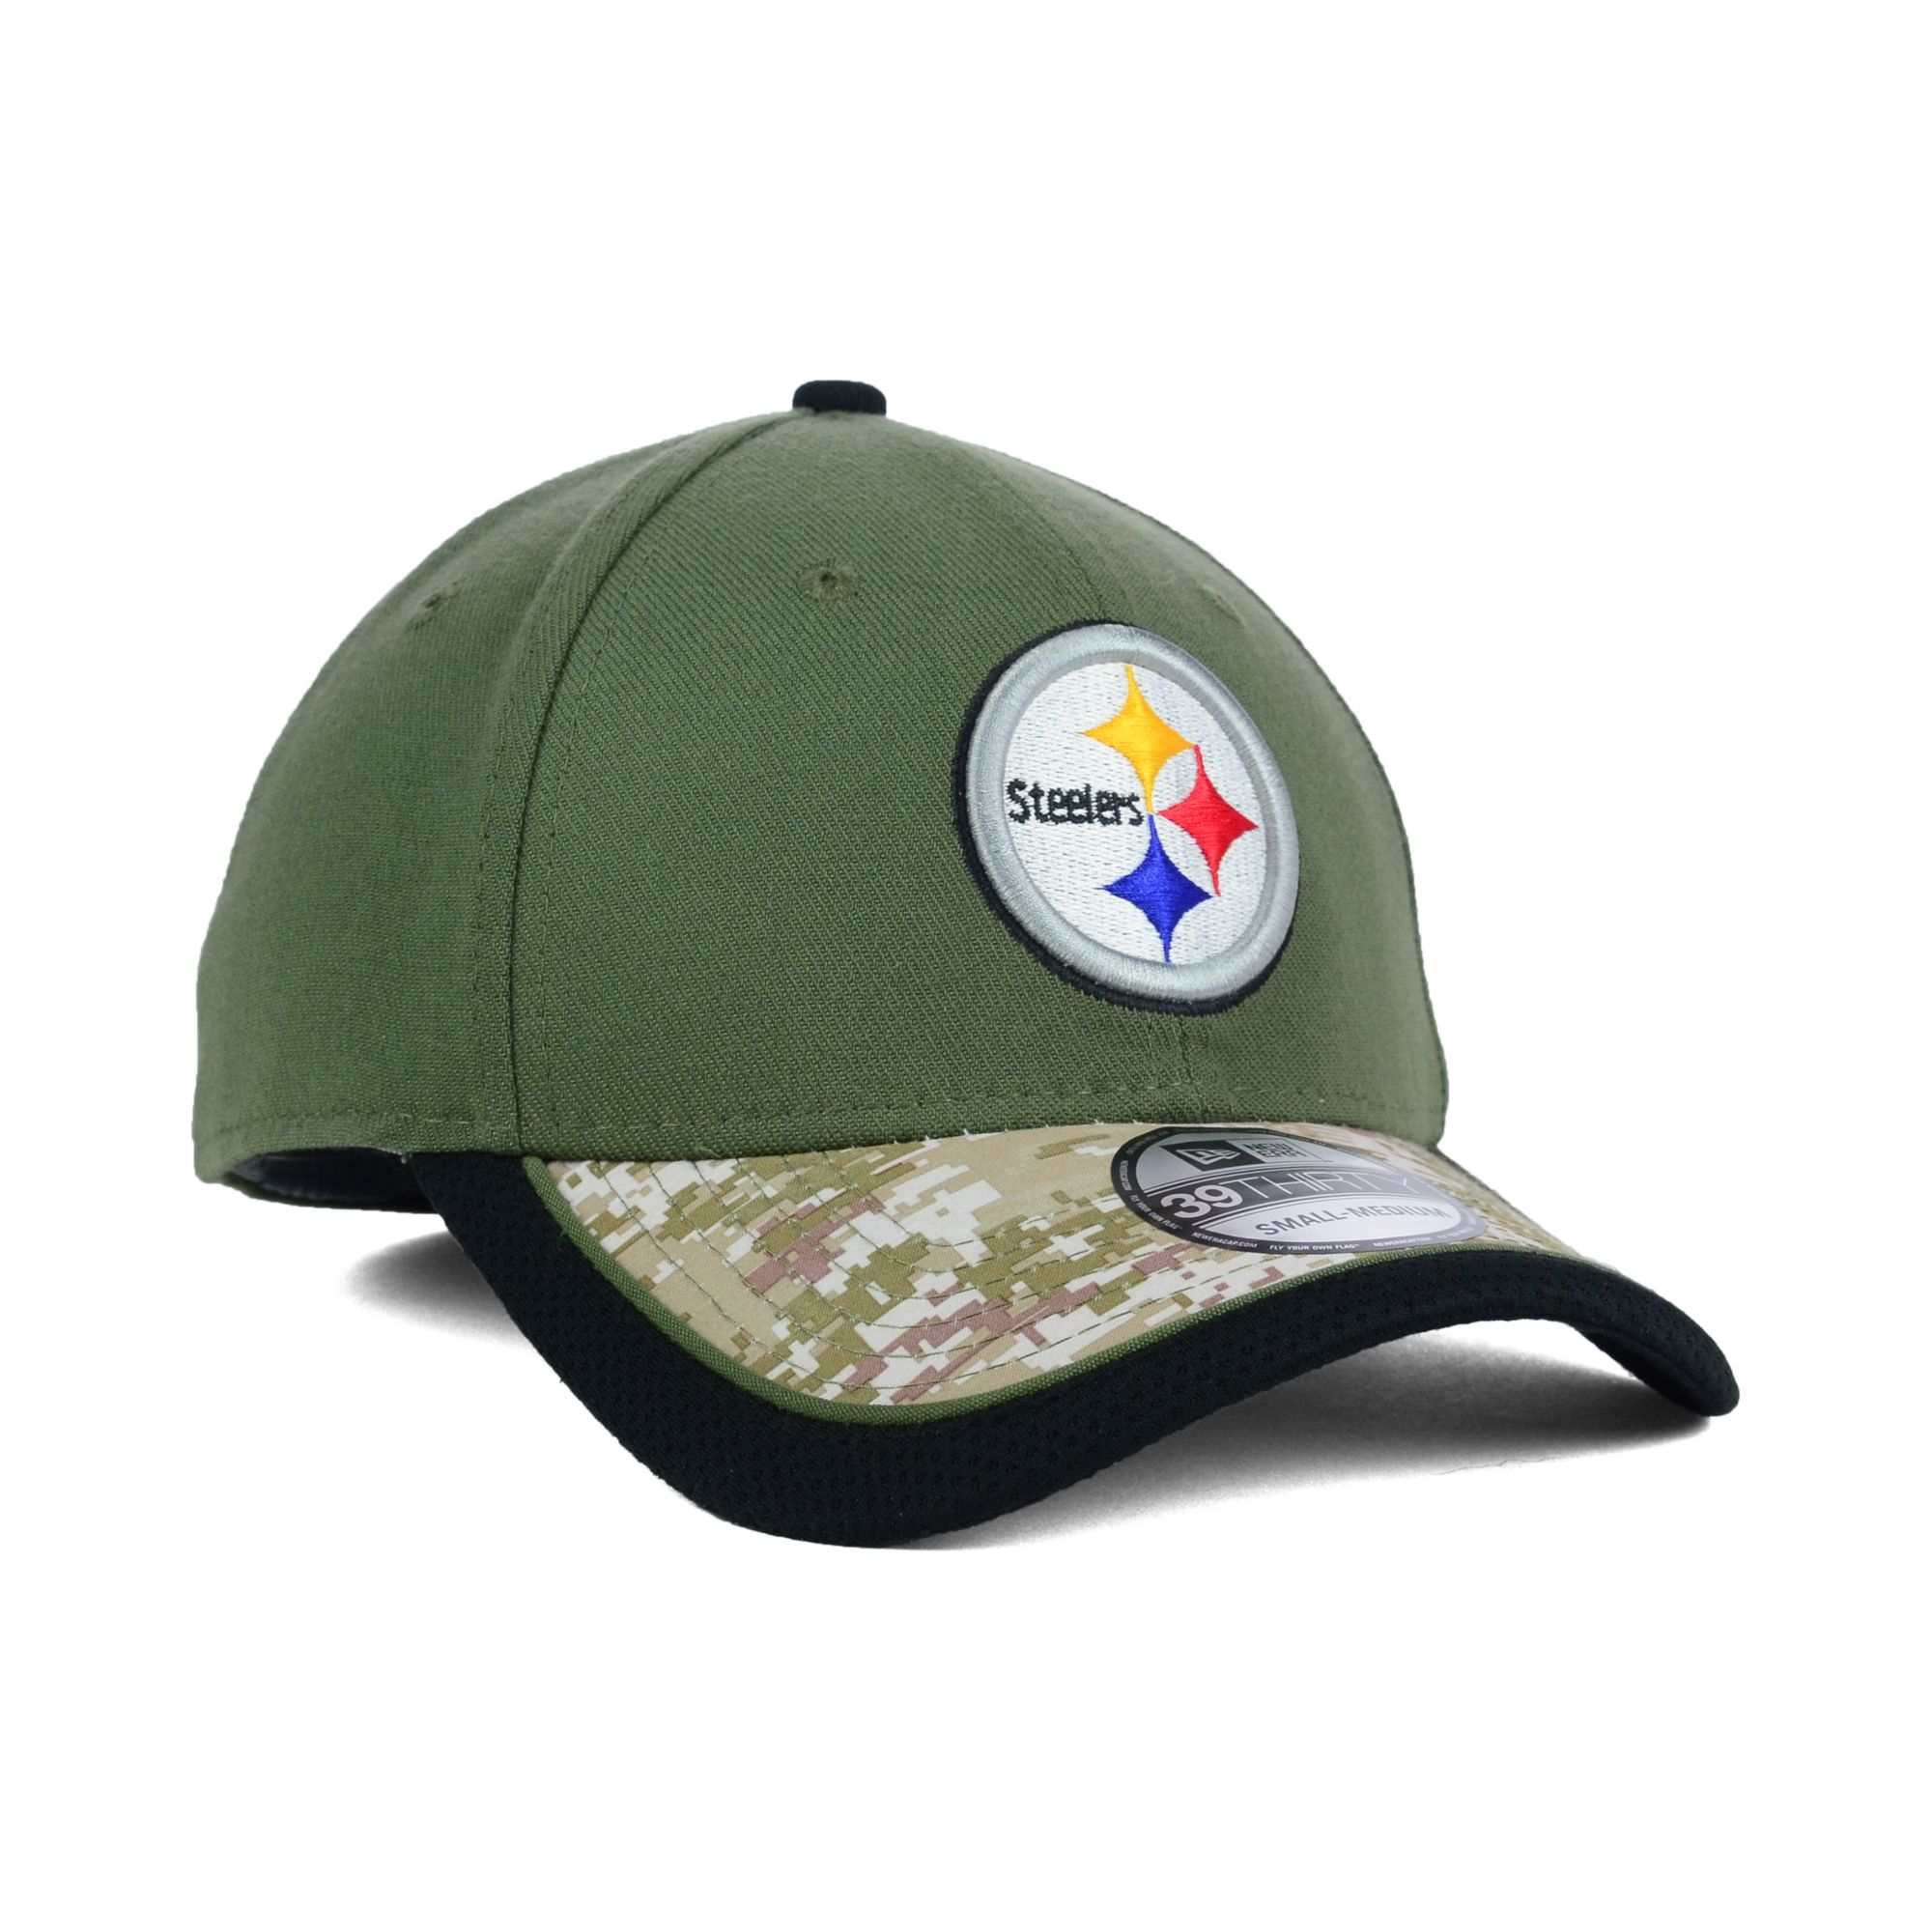 1d273197a ... knit eeafd c8c01 norway netherlands pittsburgh steelers salute to service  hat d591e 825e3 81403 e5582 reduced new era ...